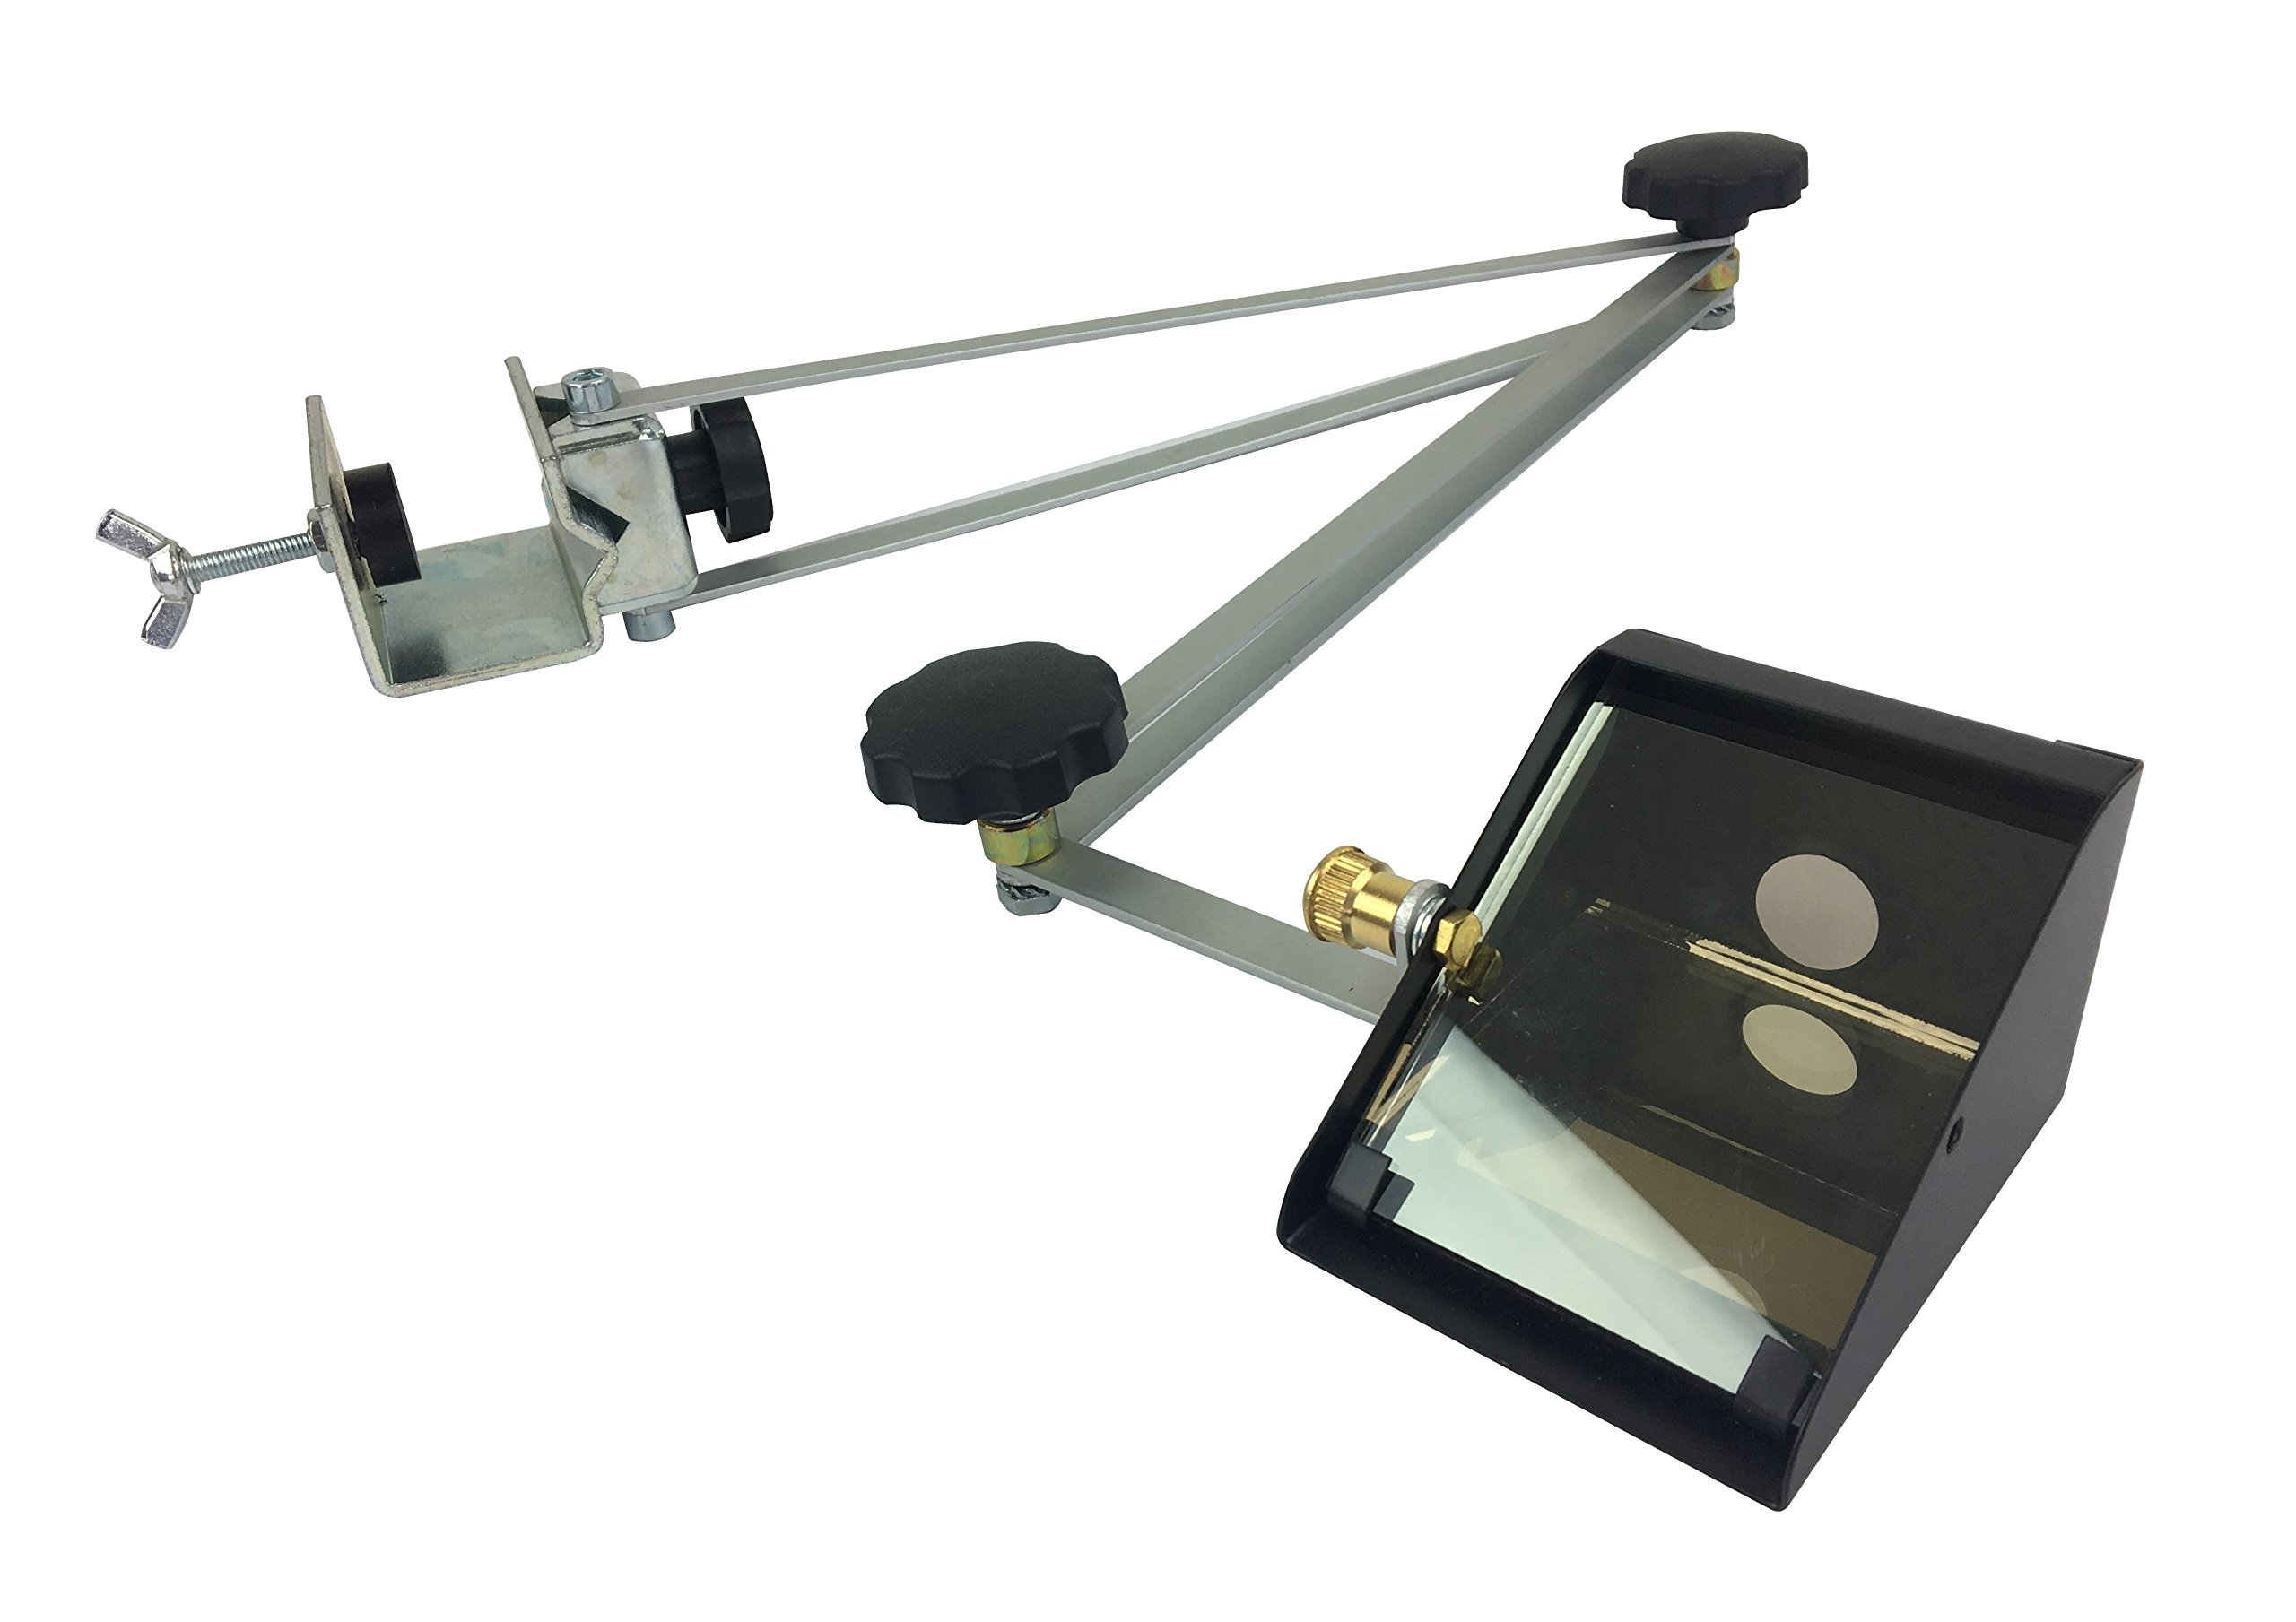 Farquar Camera Lucida New Lucida Original Drawing Tool Aid for Artist Teacher,Art Schools,Project an Image & Draw FUN Easy to USE- Makes a Great Gift for Any Artist!